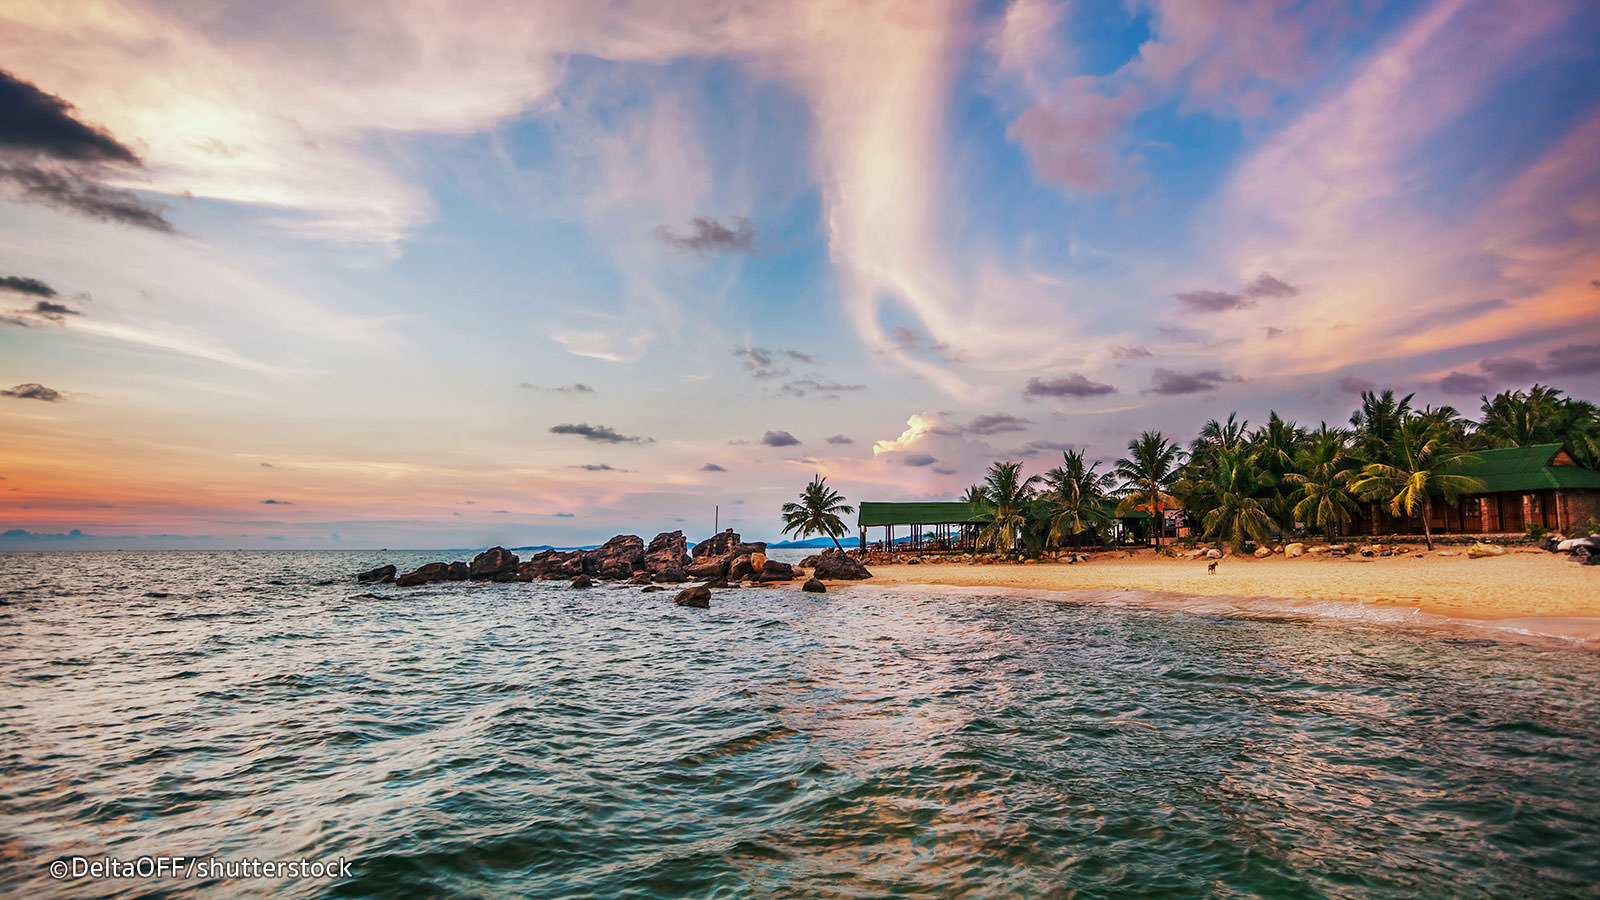 Phu Quoc Island: From the past